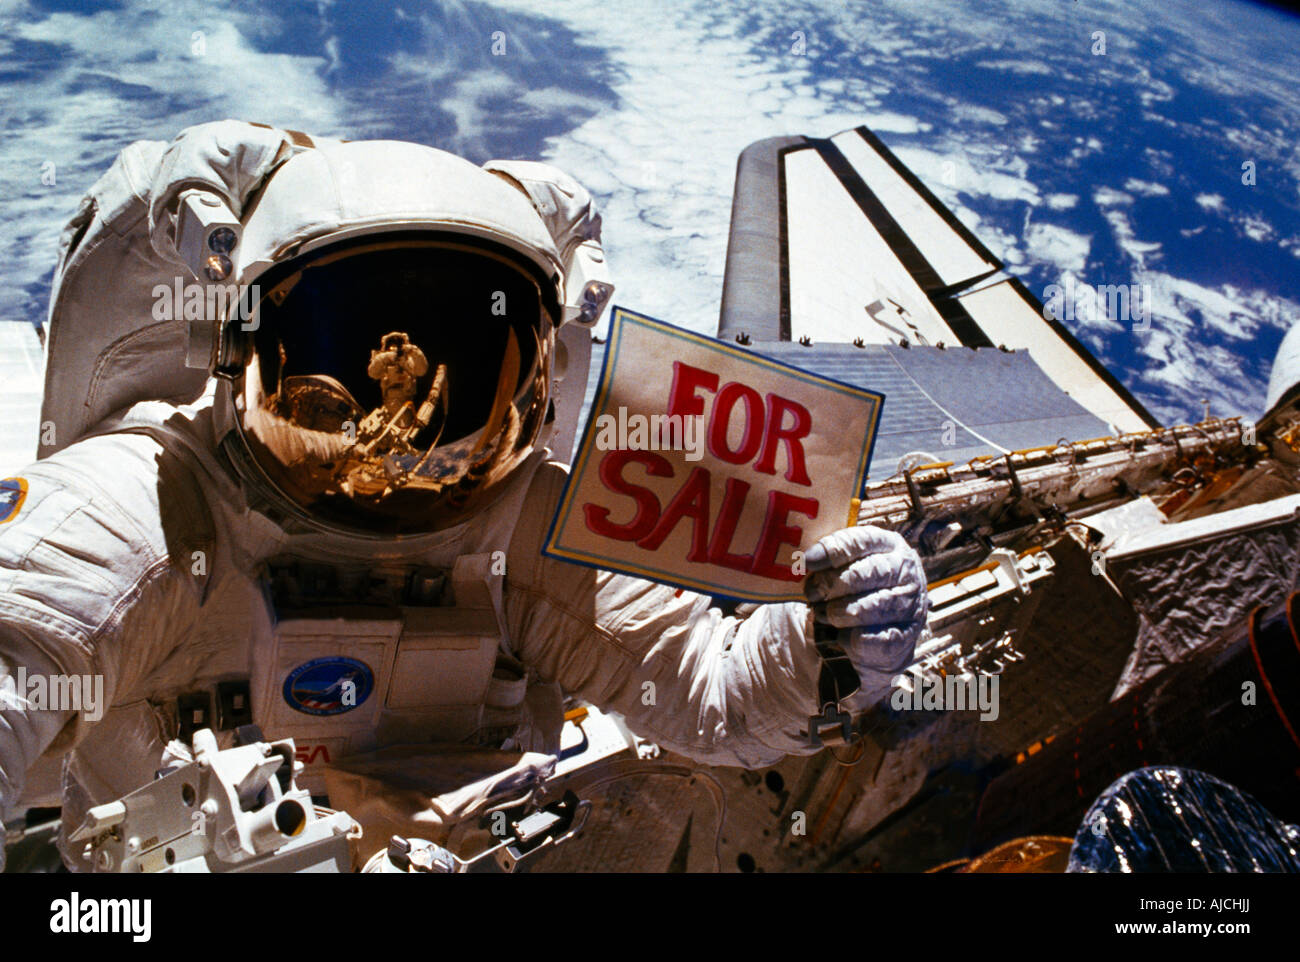 Astronaut In Space With For Sale Sign - Stock Image